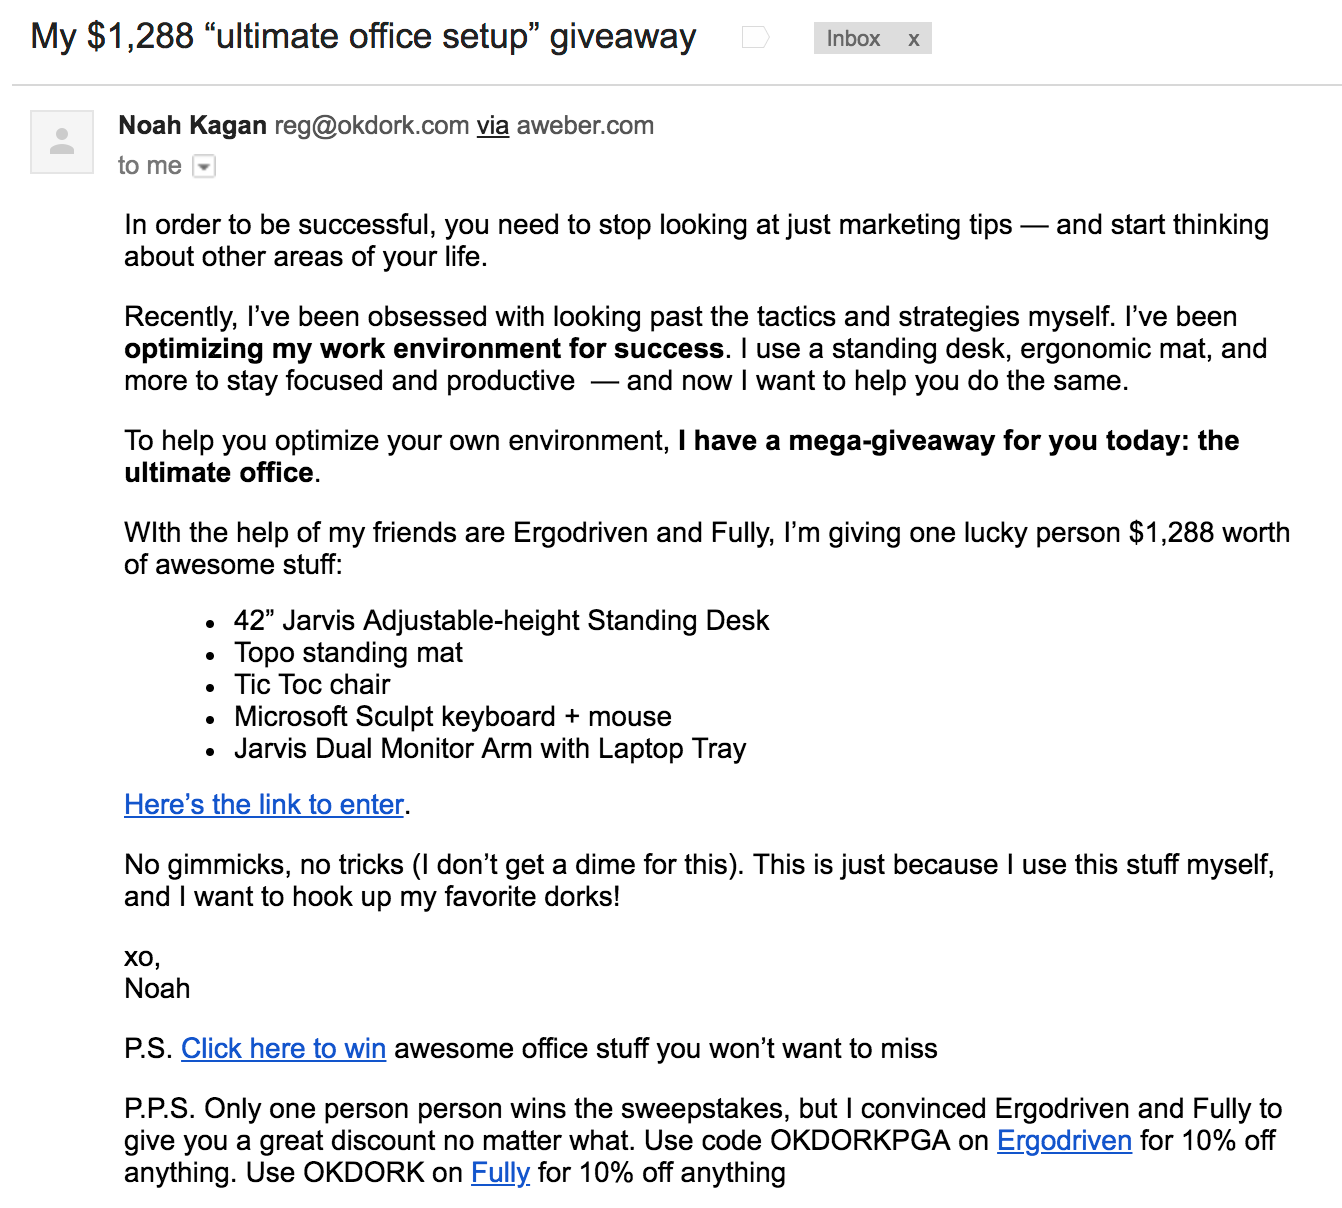 Screenshot showing an email promoting a giveaway